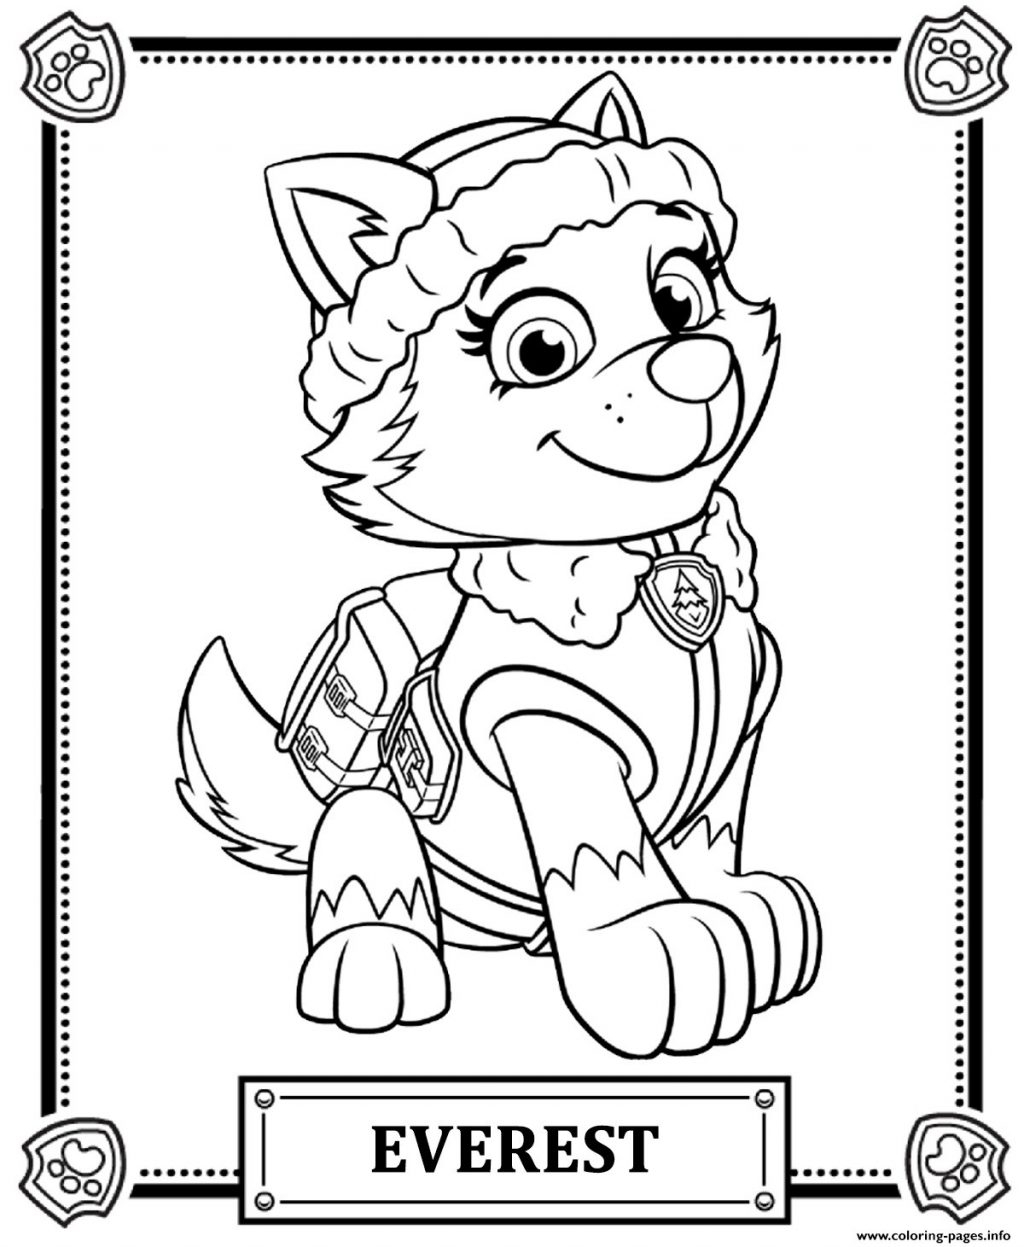 graphic relating to Paw Patrol Coloring Pages Printable identified as Marshall Paw Patrol Coloring Website page Coloring Internet pages Paw Patrol